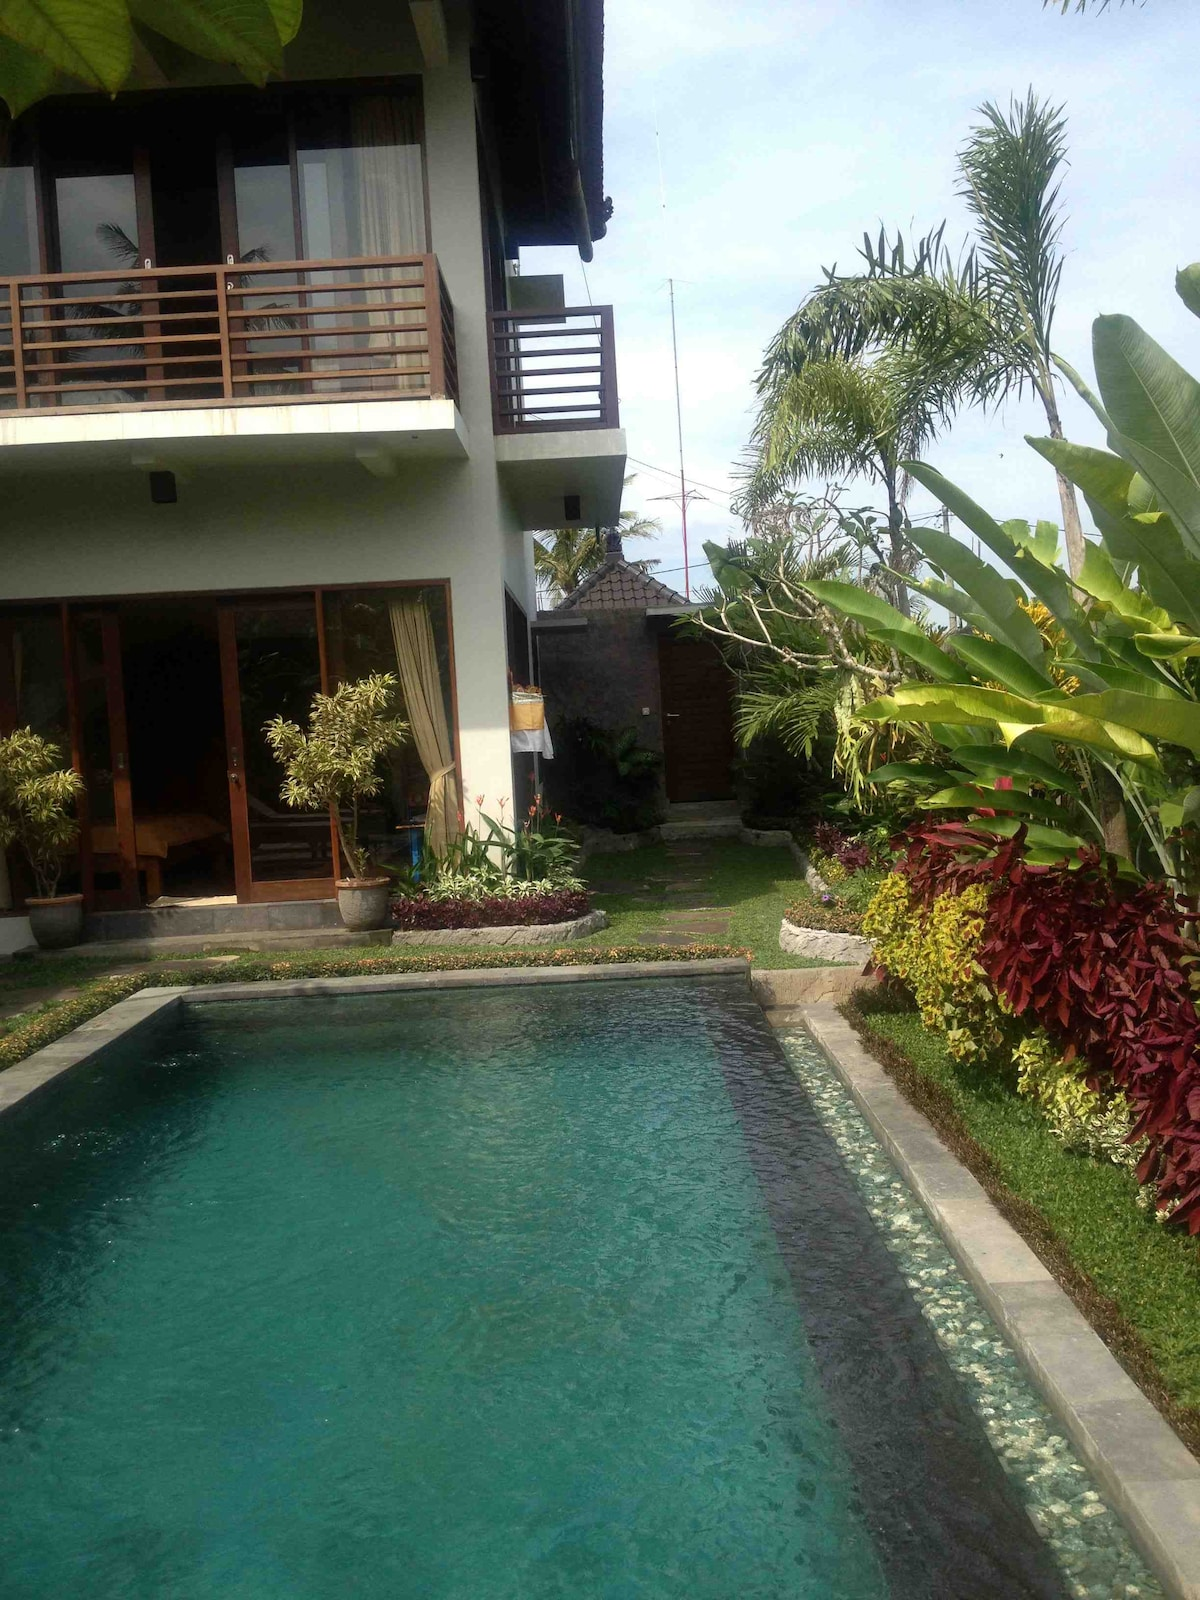 The beautiful infinity pool with your ground level bedroom visible at the end